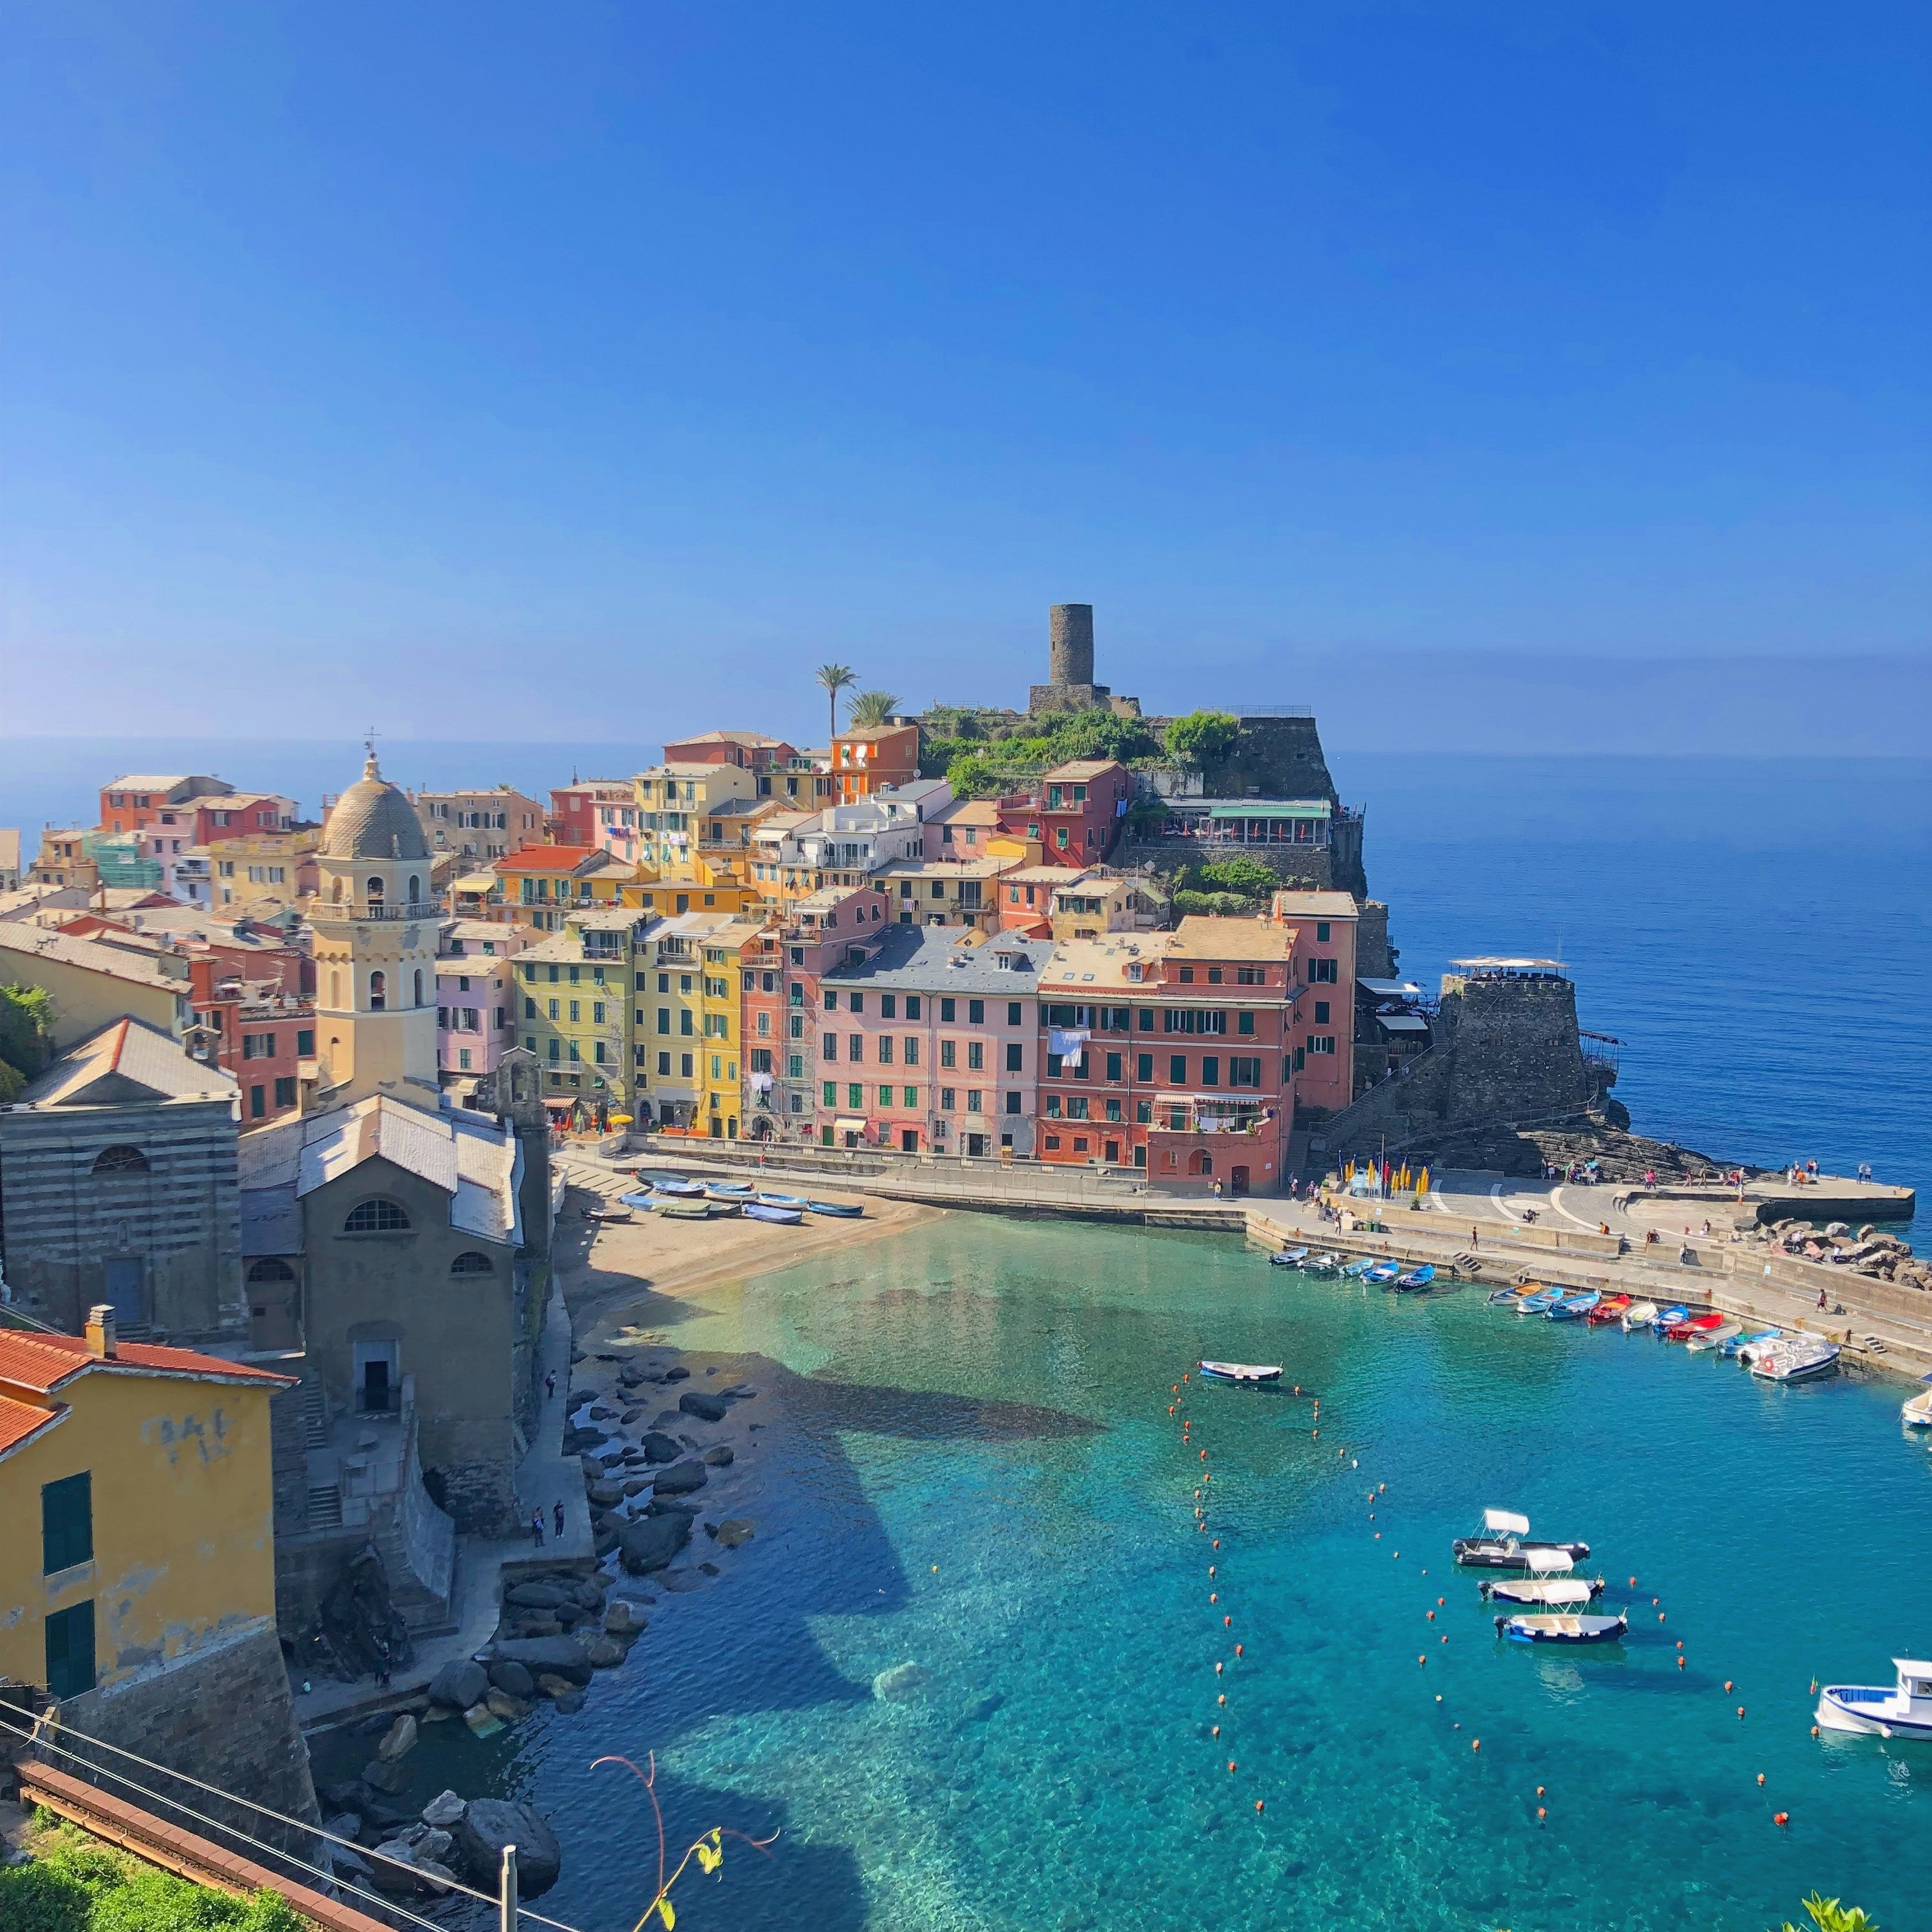 Vernazza Italy on a Cycling and Photography Tour with Kevin Wenning and Intentionally Lost